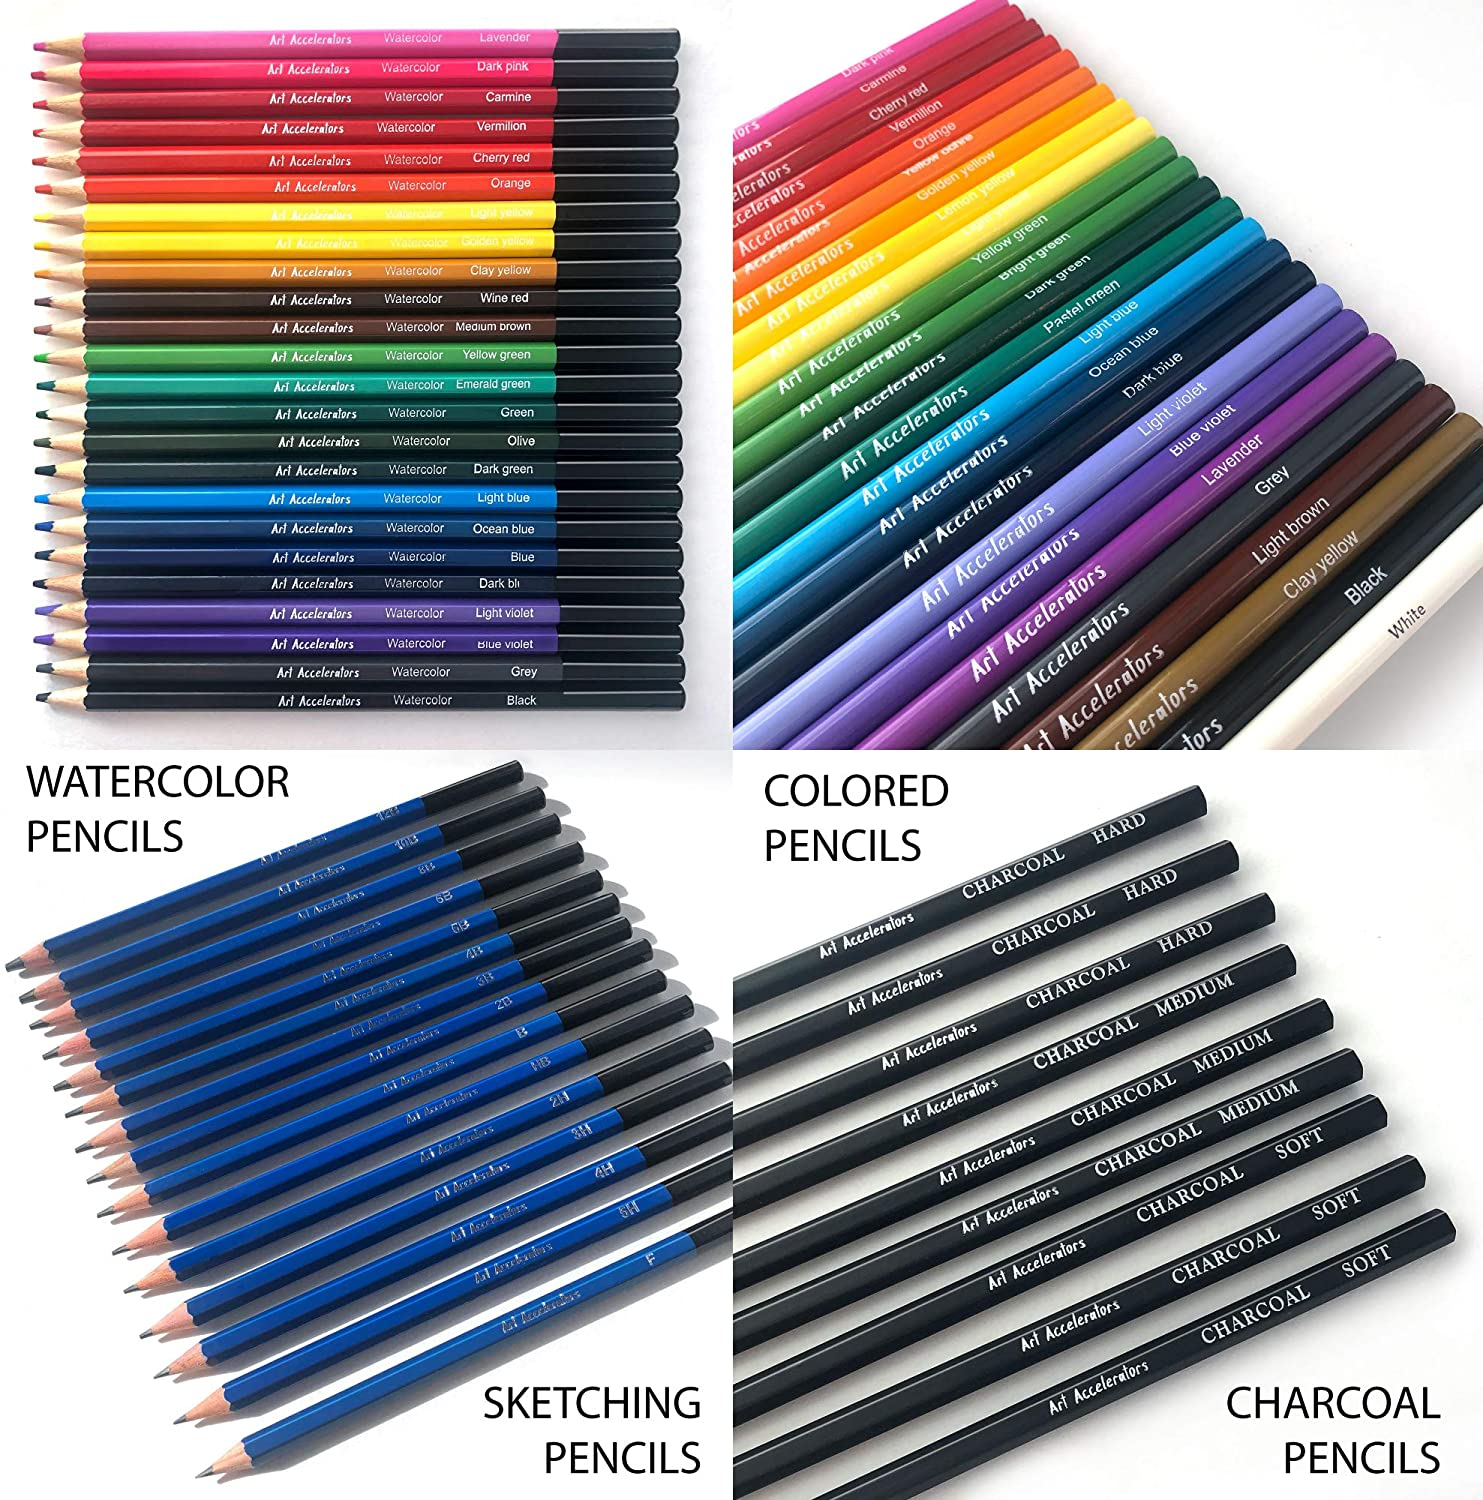 Art Pencils Drawing Kit – 72 Pencil Supplies Set w/ 15 Sketching, 24 Oil Color, 24 Watercolor & 9 Charcoal Pencils. For Beginners, Adults & Professionals. Graphite Sketch Sets : Office Products